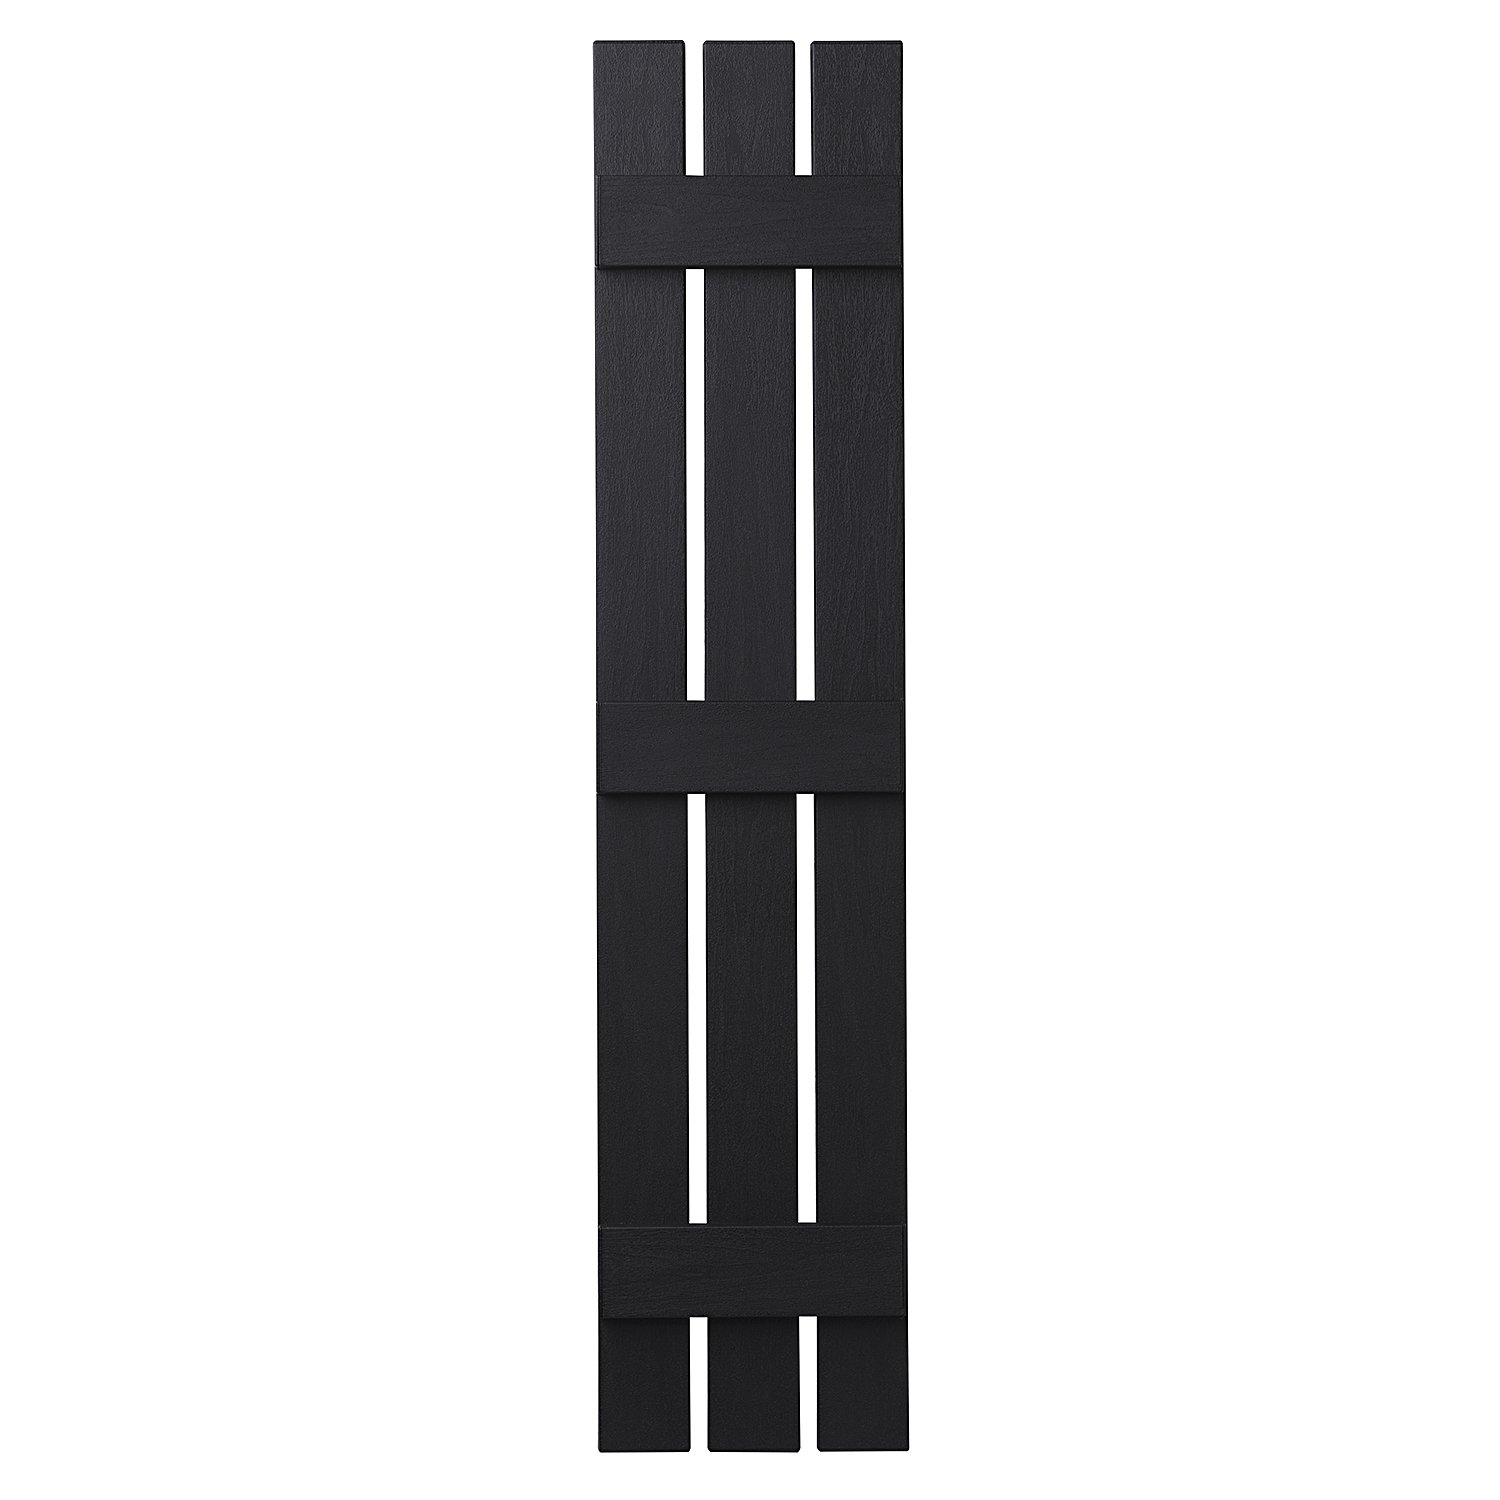 Ply Gem Shutters and Accents VIN301263 33 3 Open Board and Batten Shutter, Black